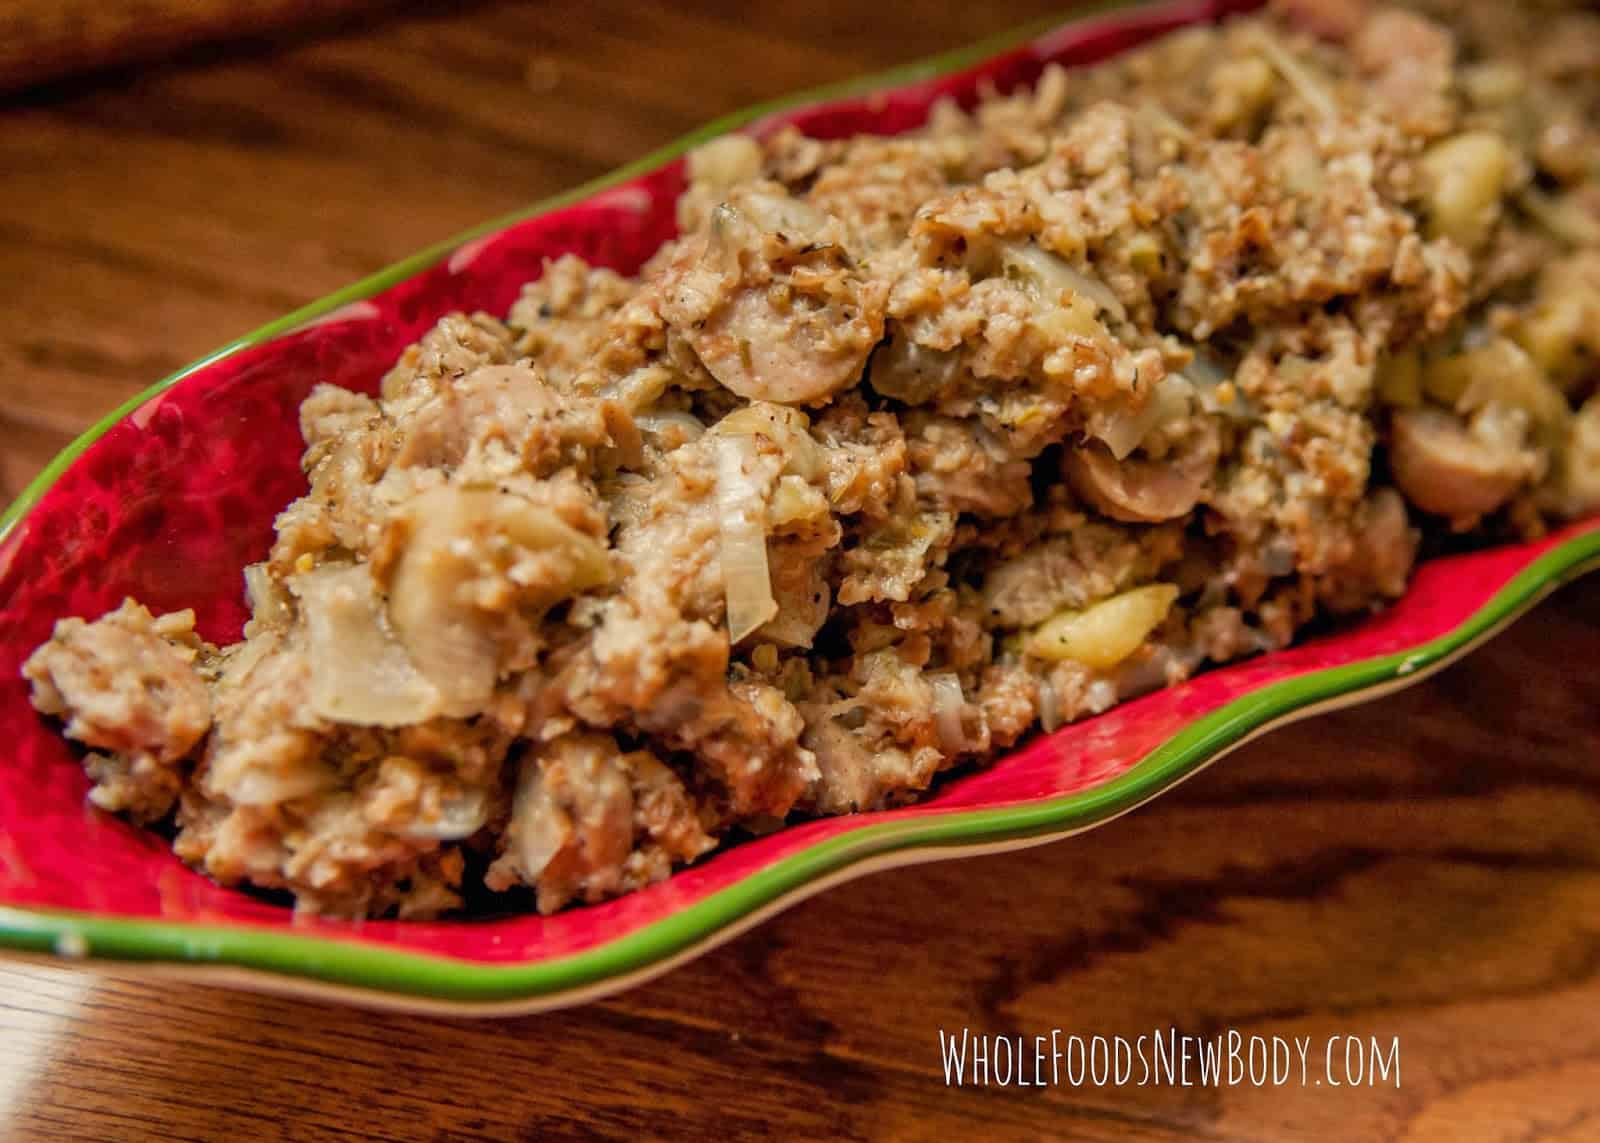 Crock pot apple sausage stuffing